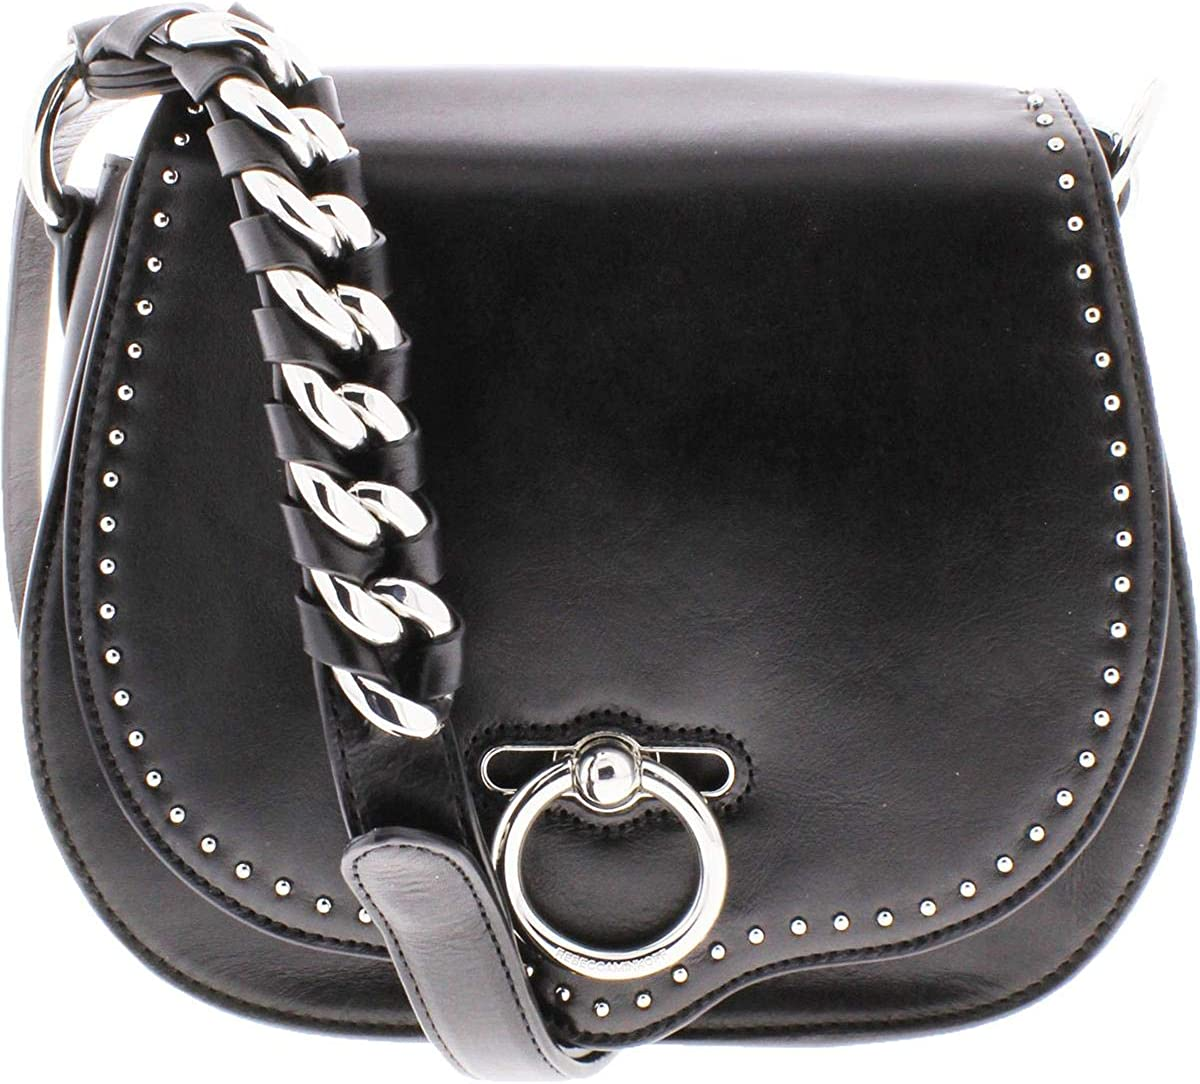 Rebecca Minkoff Jean Women's Leather Studded Small Convertible Saddle Handbag